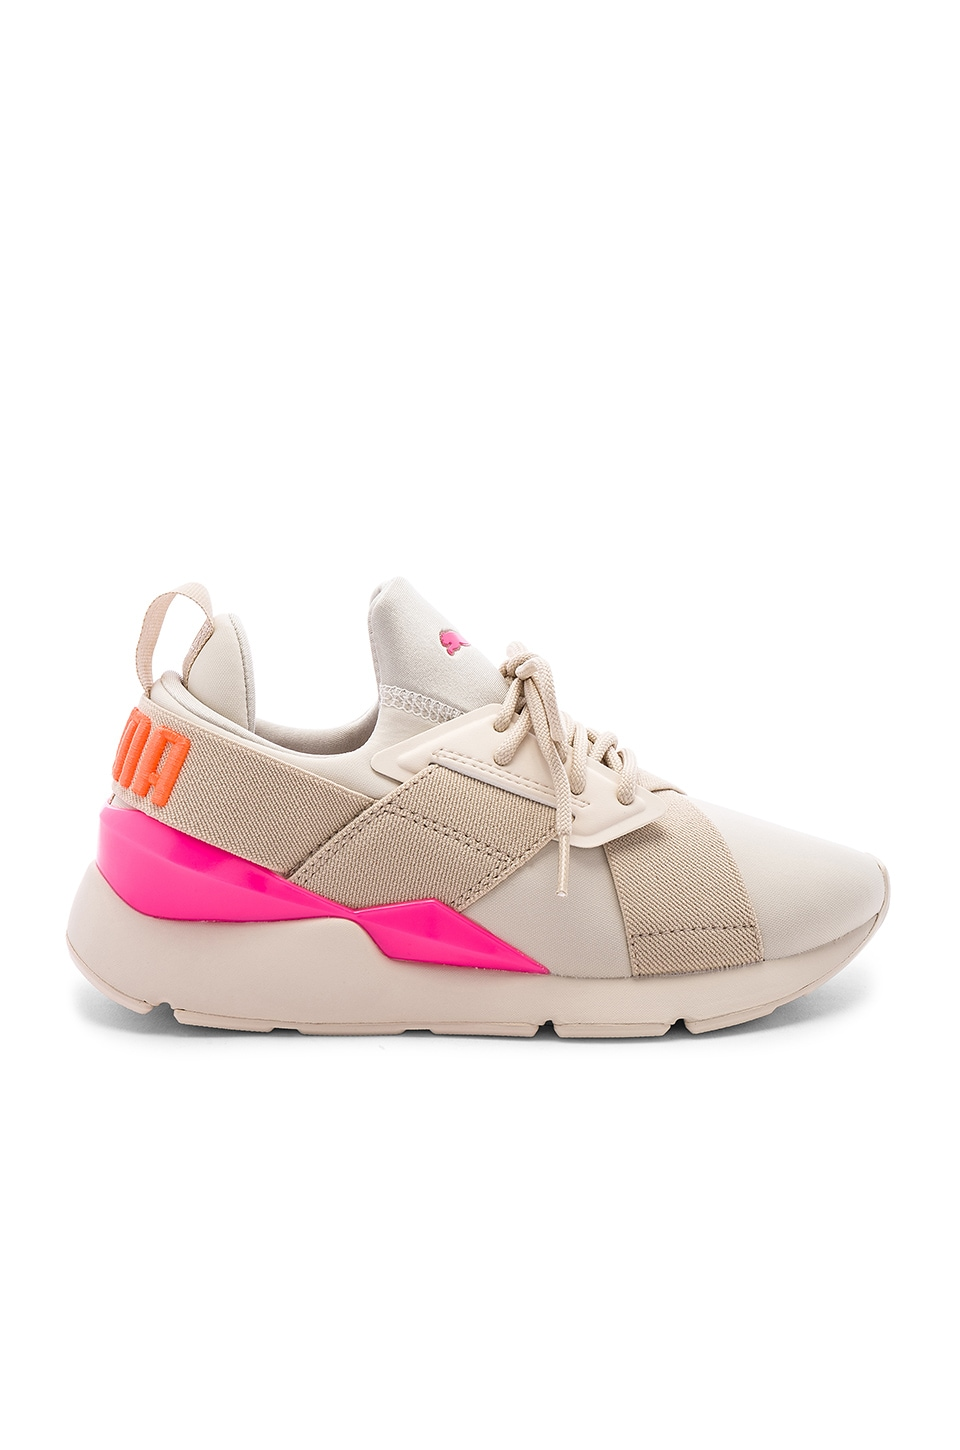 Puma Muse Chase Sneaker in Birch